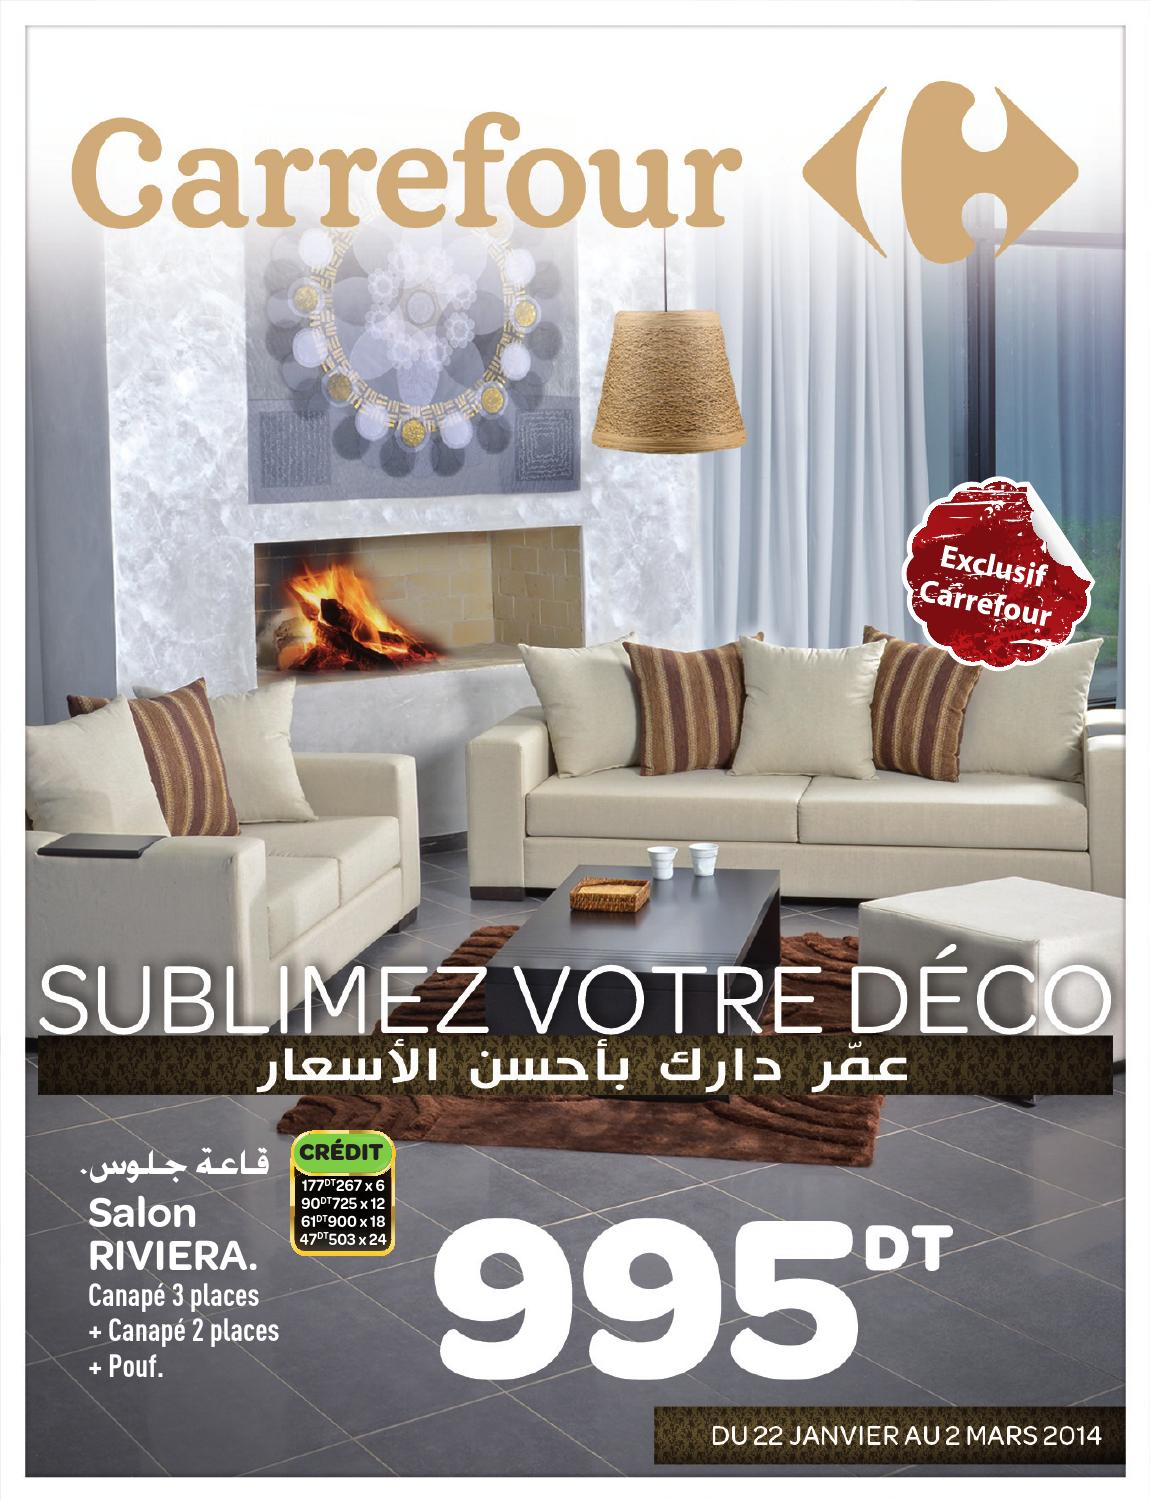 catalogue carrefour deco by carrefour tunisie issuu. Black Bedroom Furniture Sets. Home Design Ideas